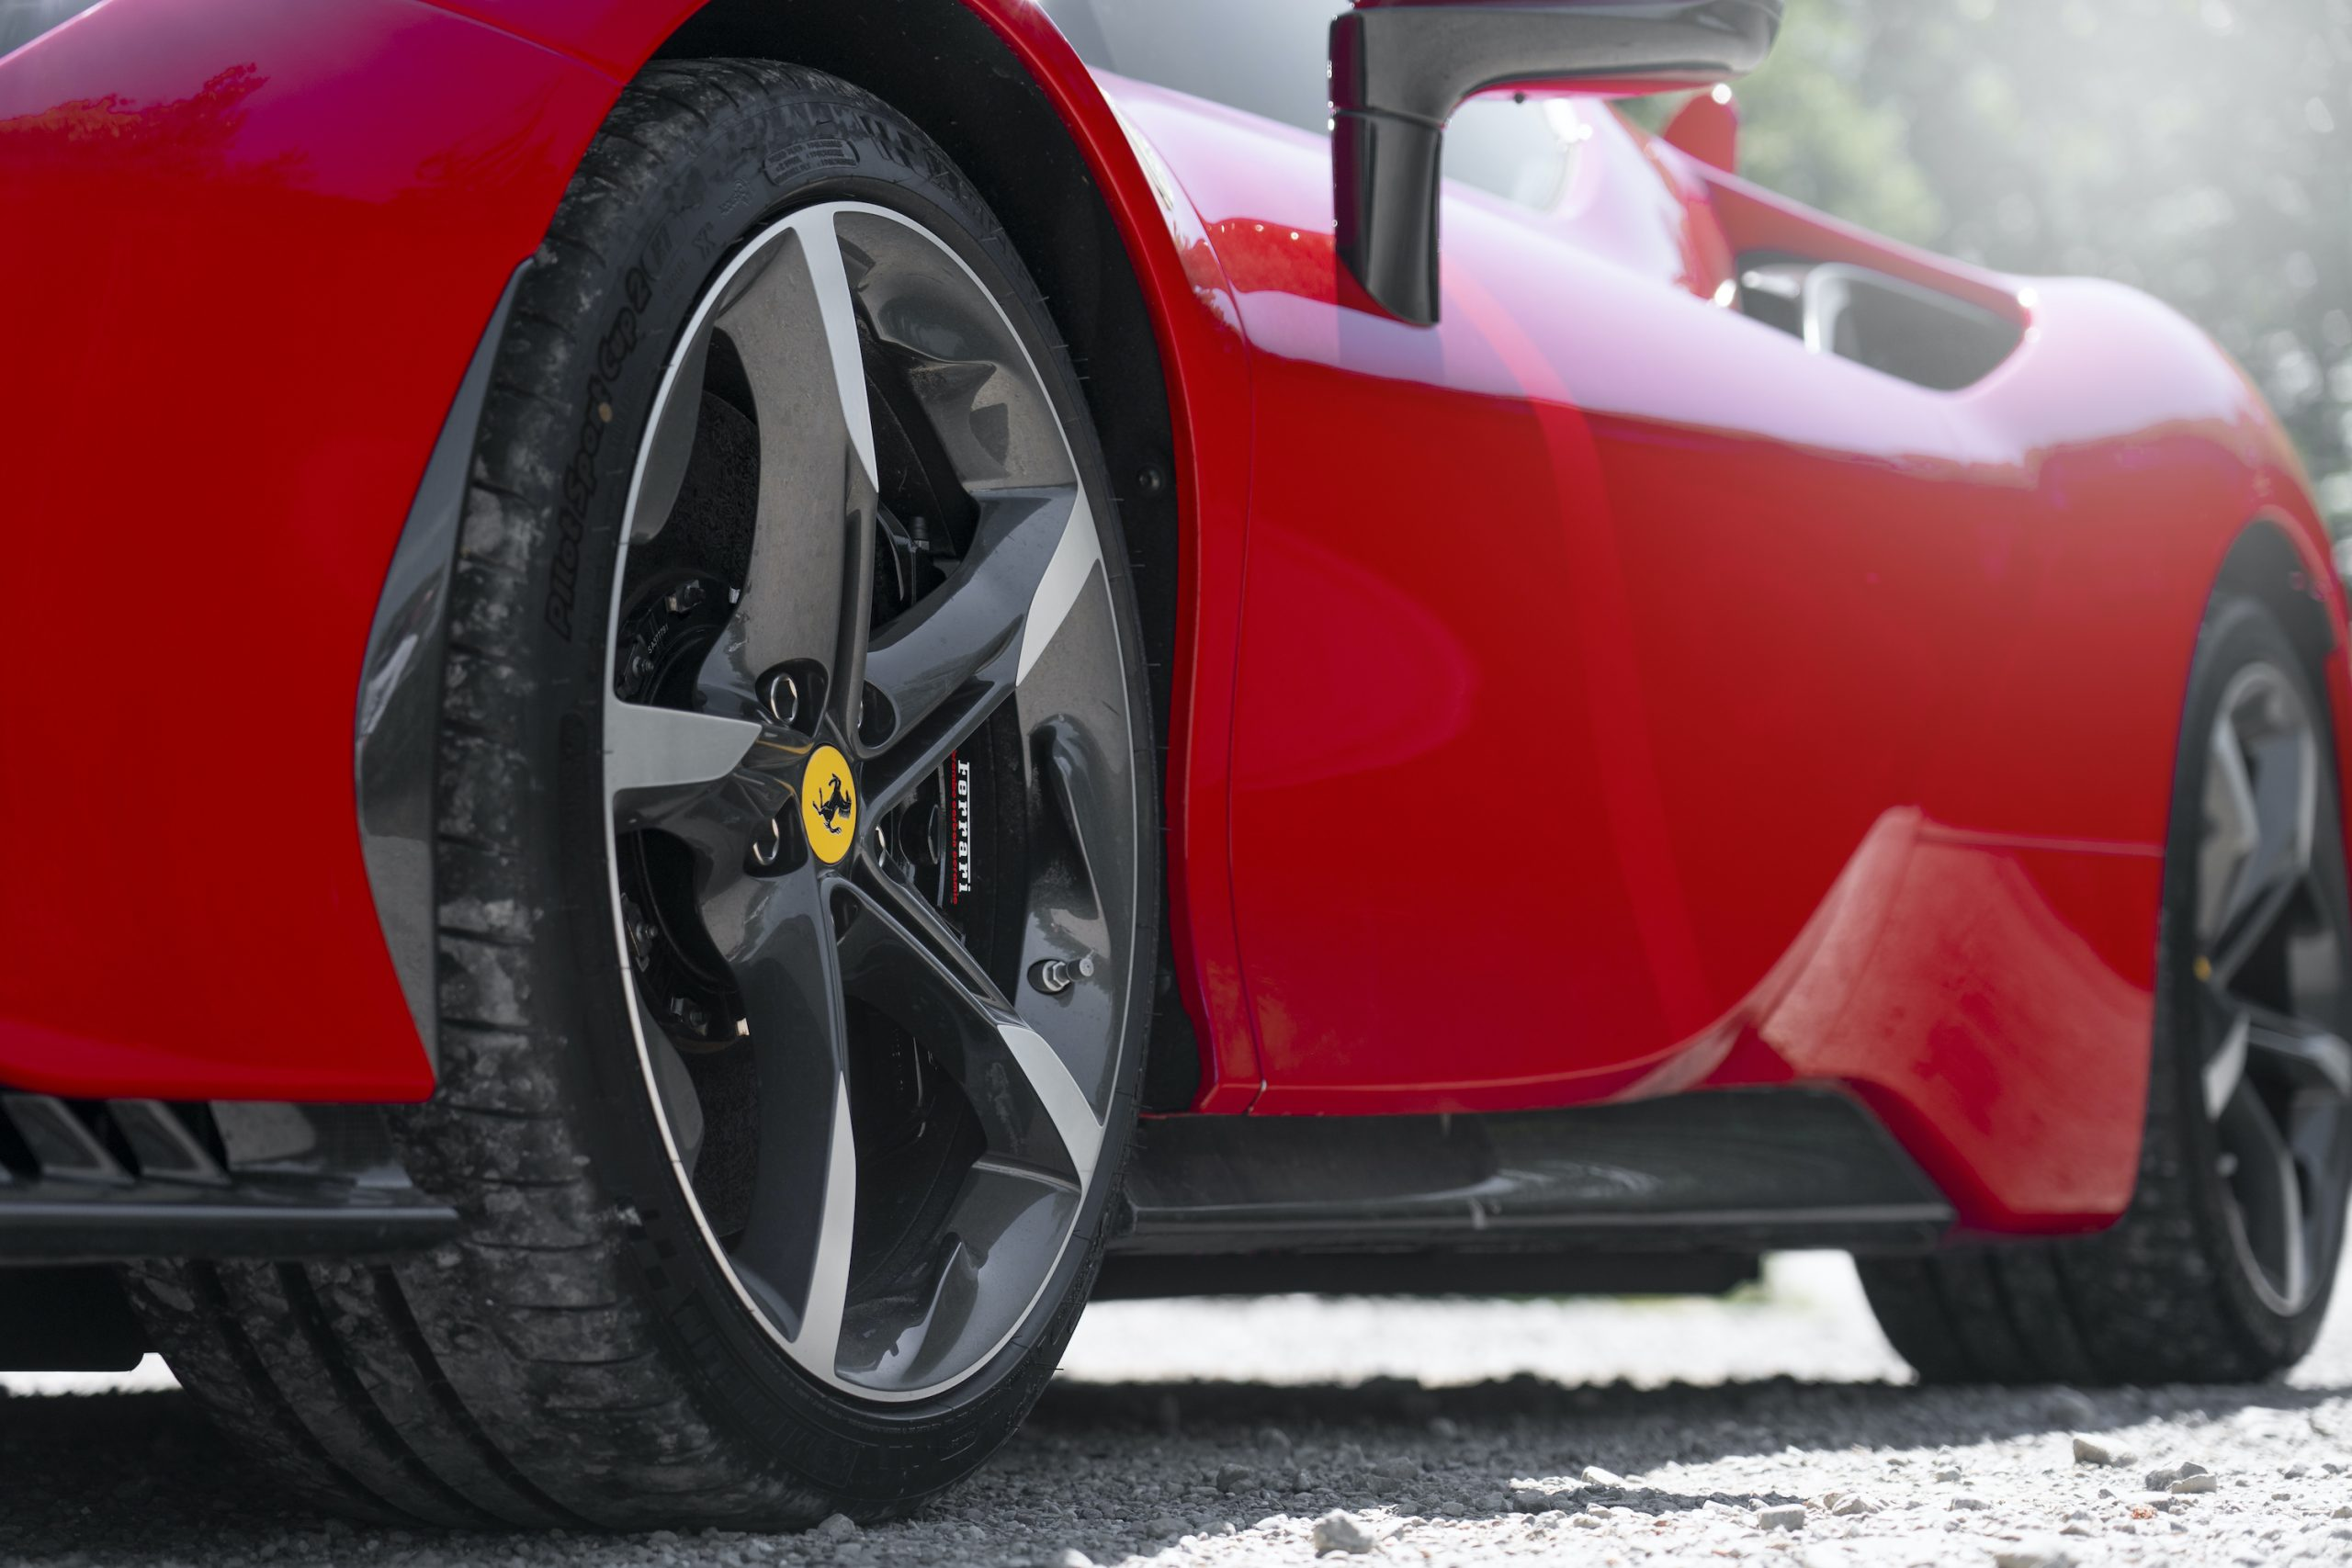 SF90 Stradale side close